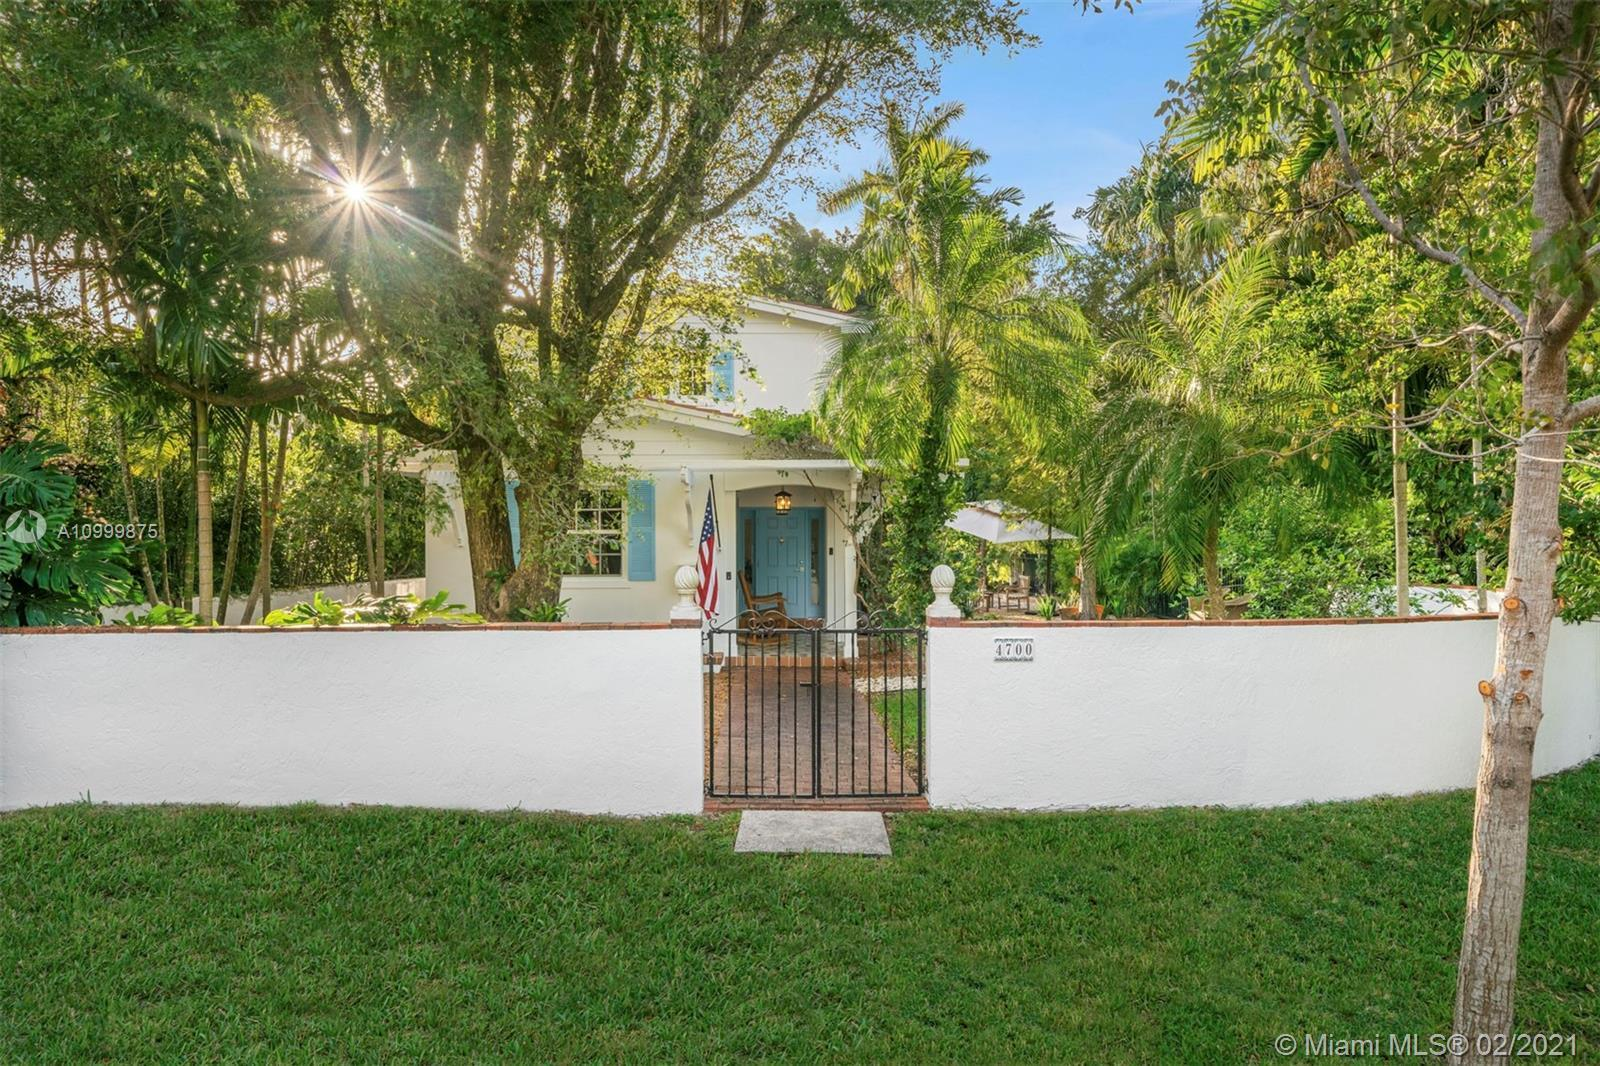 Warm and inviting, this remodeled 2,278 Sq. Ft. home is a serene, peaceful refuge with timeless eleg